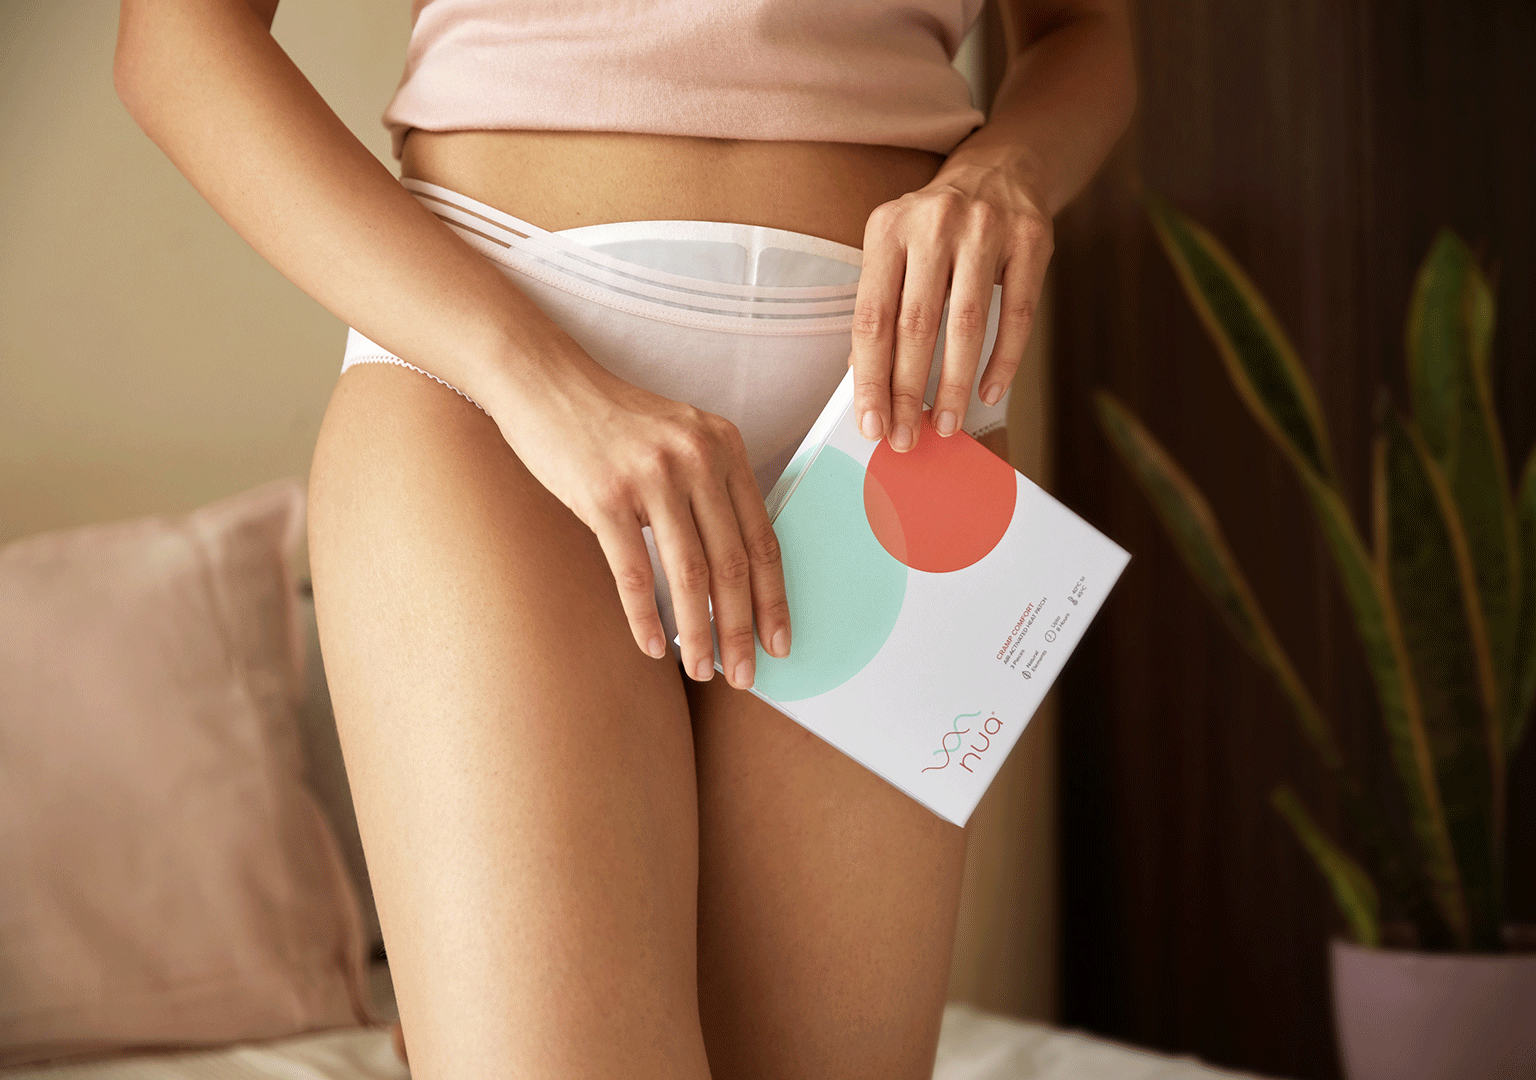 A Cramp Comfort story: when we listened and responded to period pain